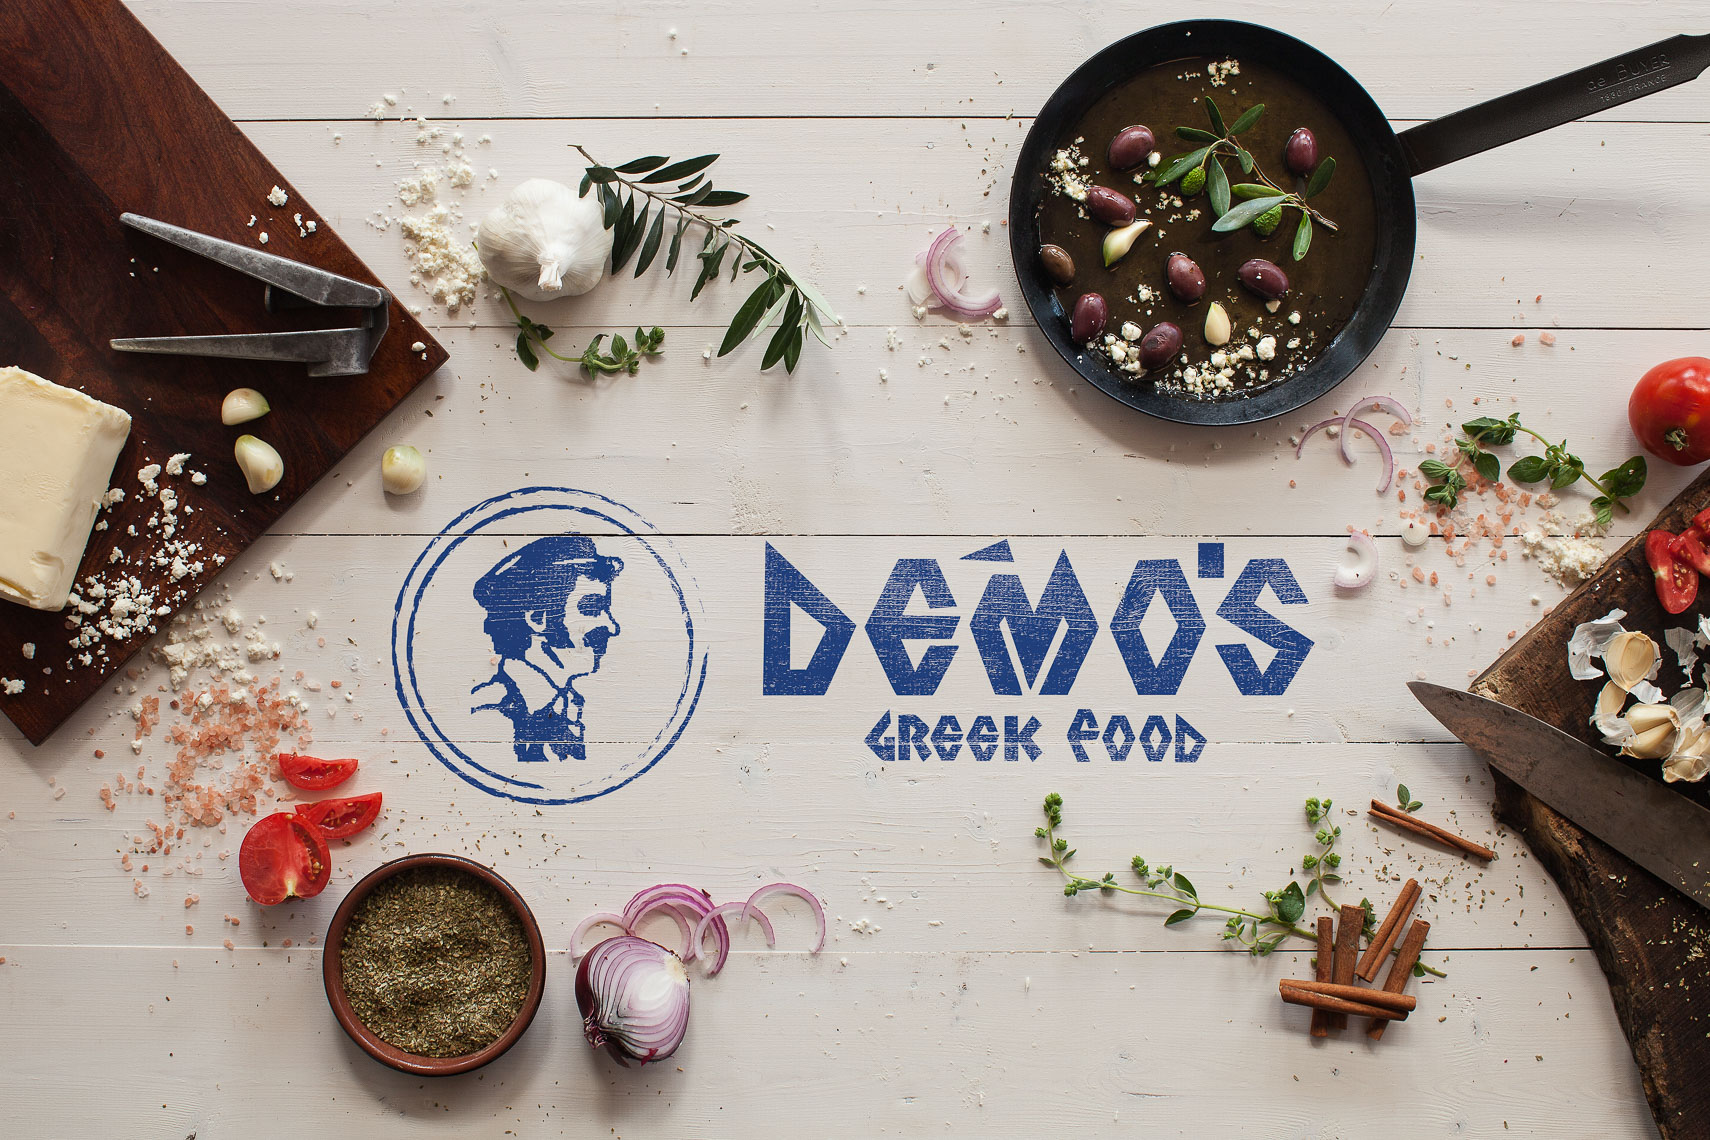 demos-greek-food-san-antonio-jason-risner-photography-7793-w-logo